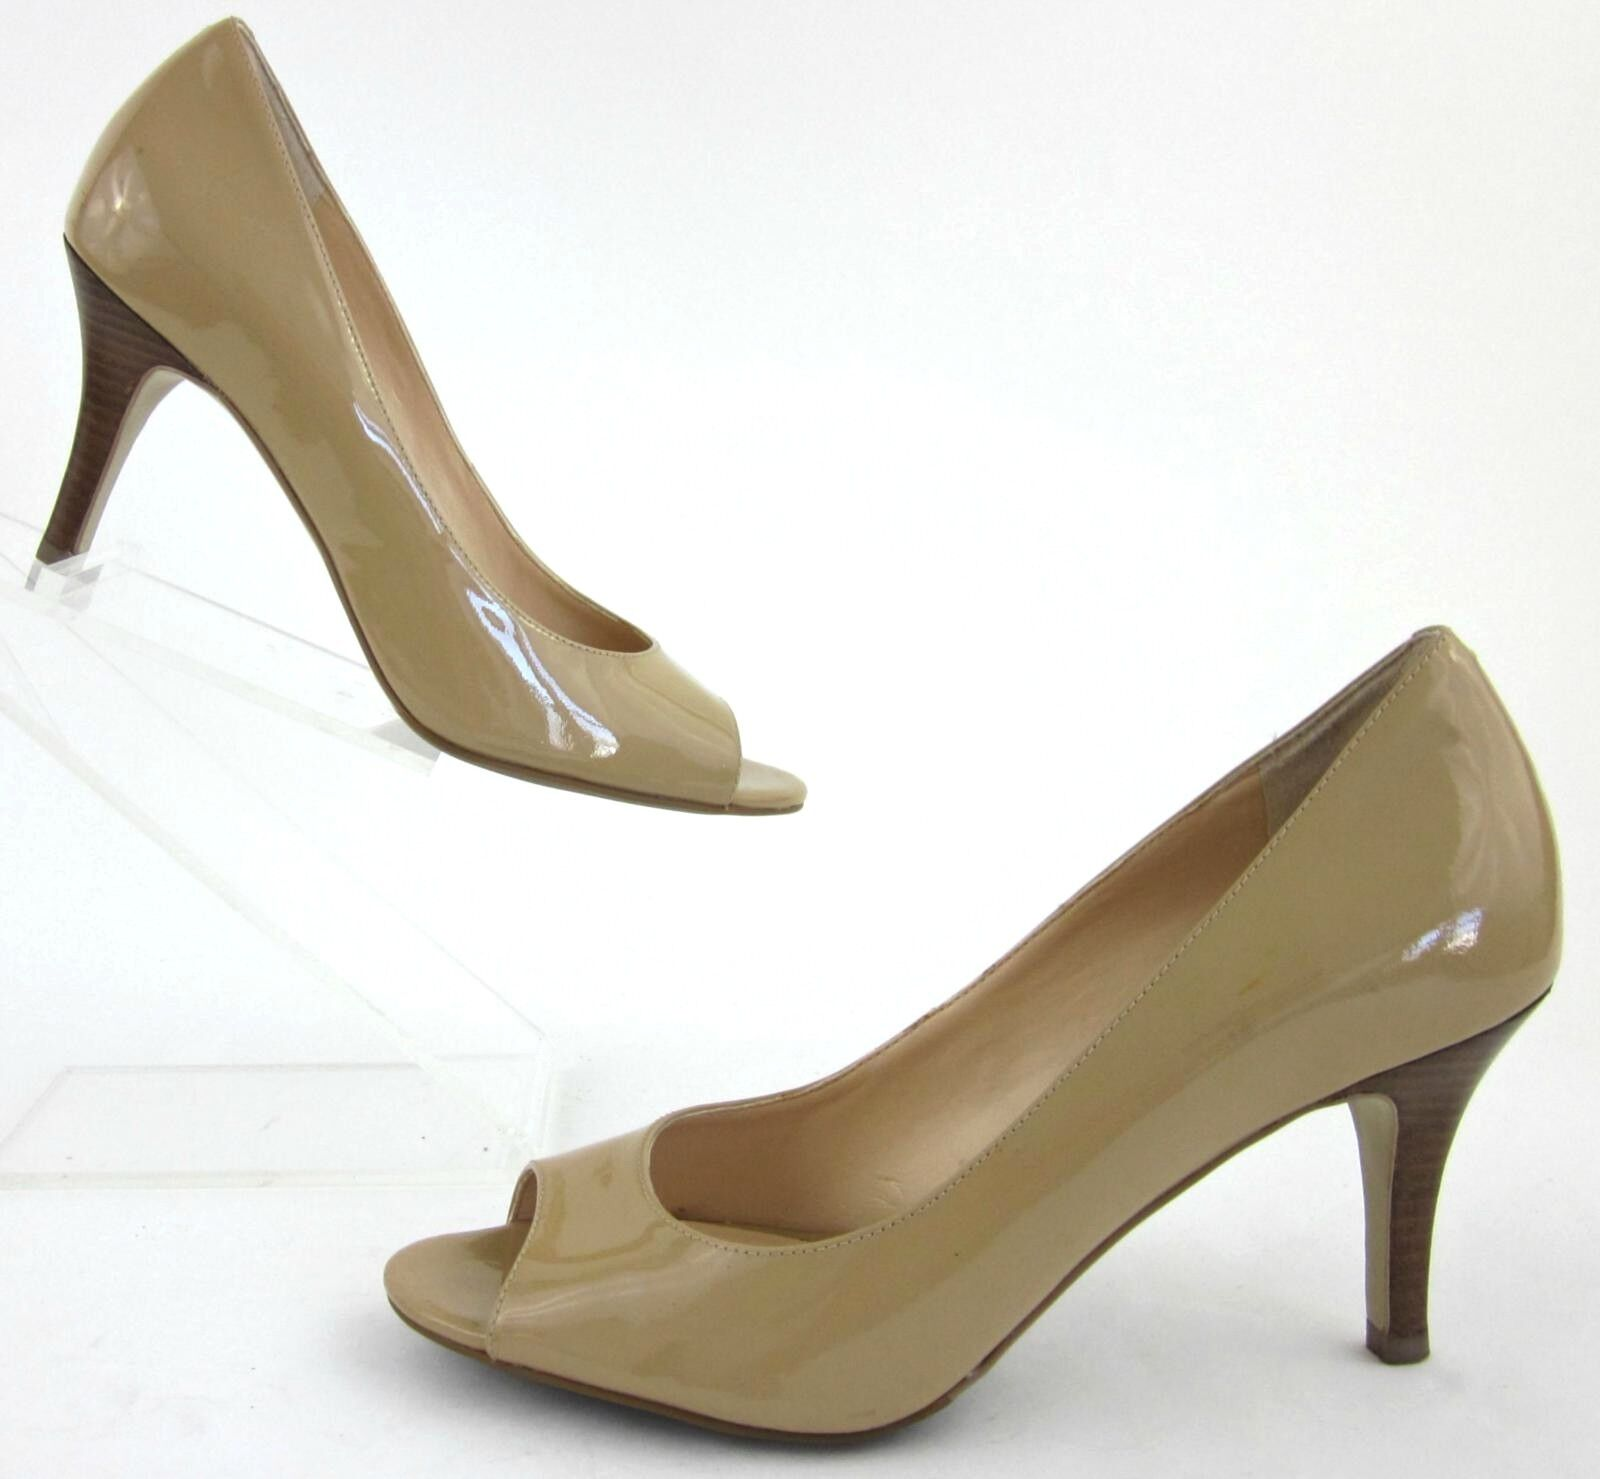 Cole Haan 'Bethany' Open Toe Pumps Sandstone Patent Leather 7B Fantastic